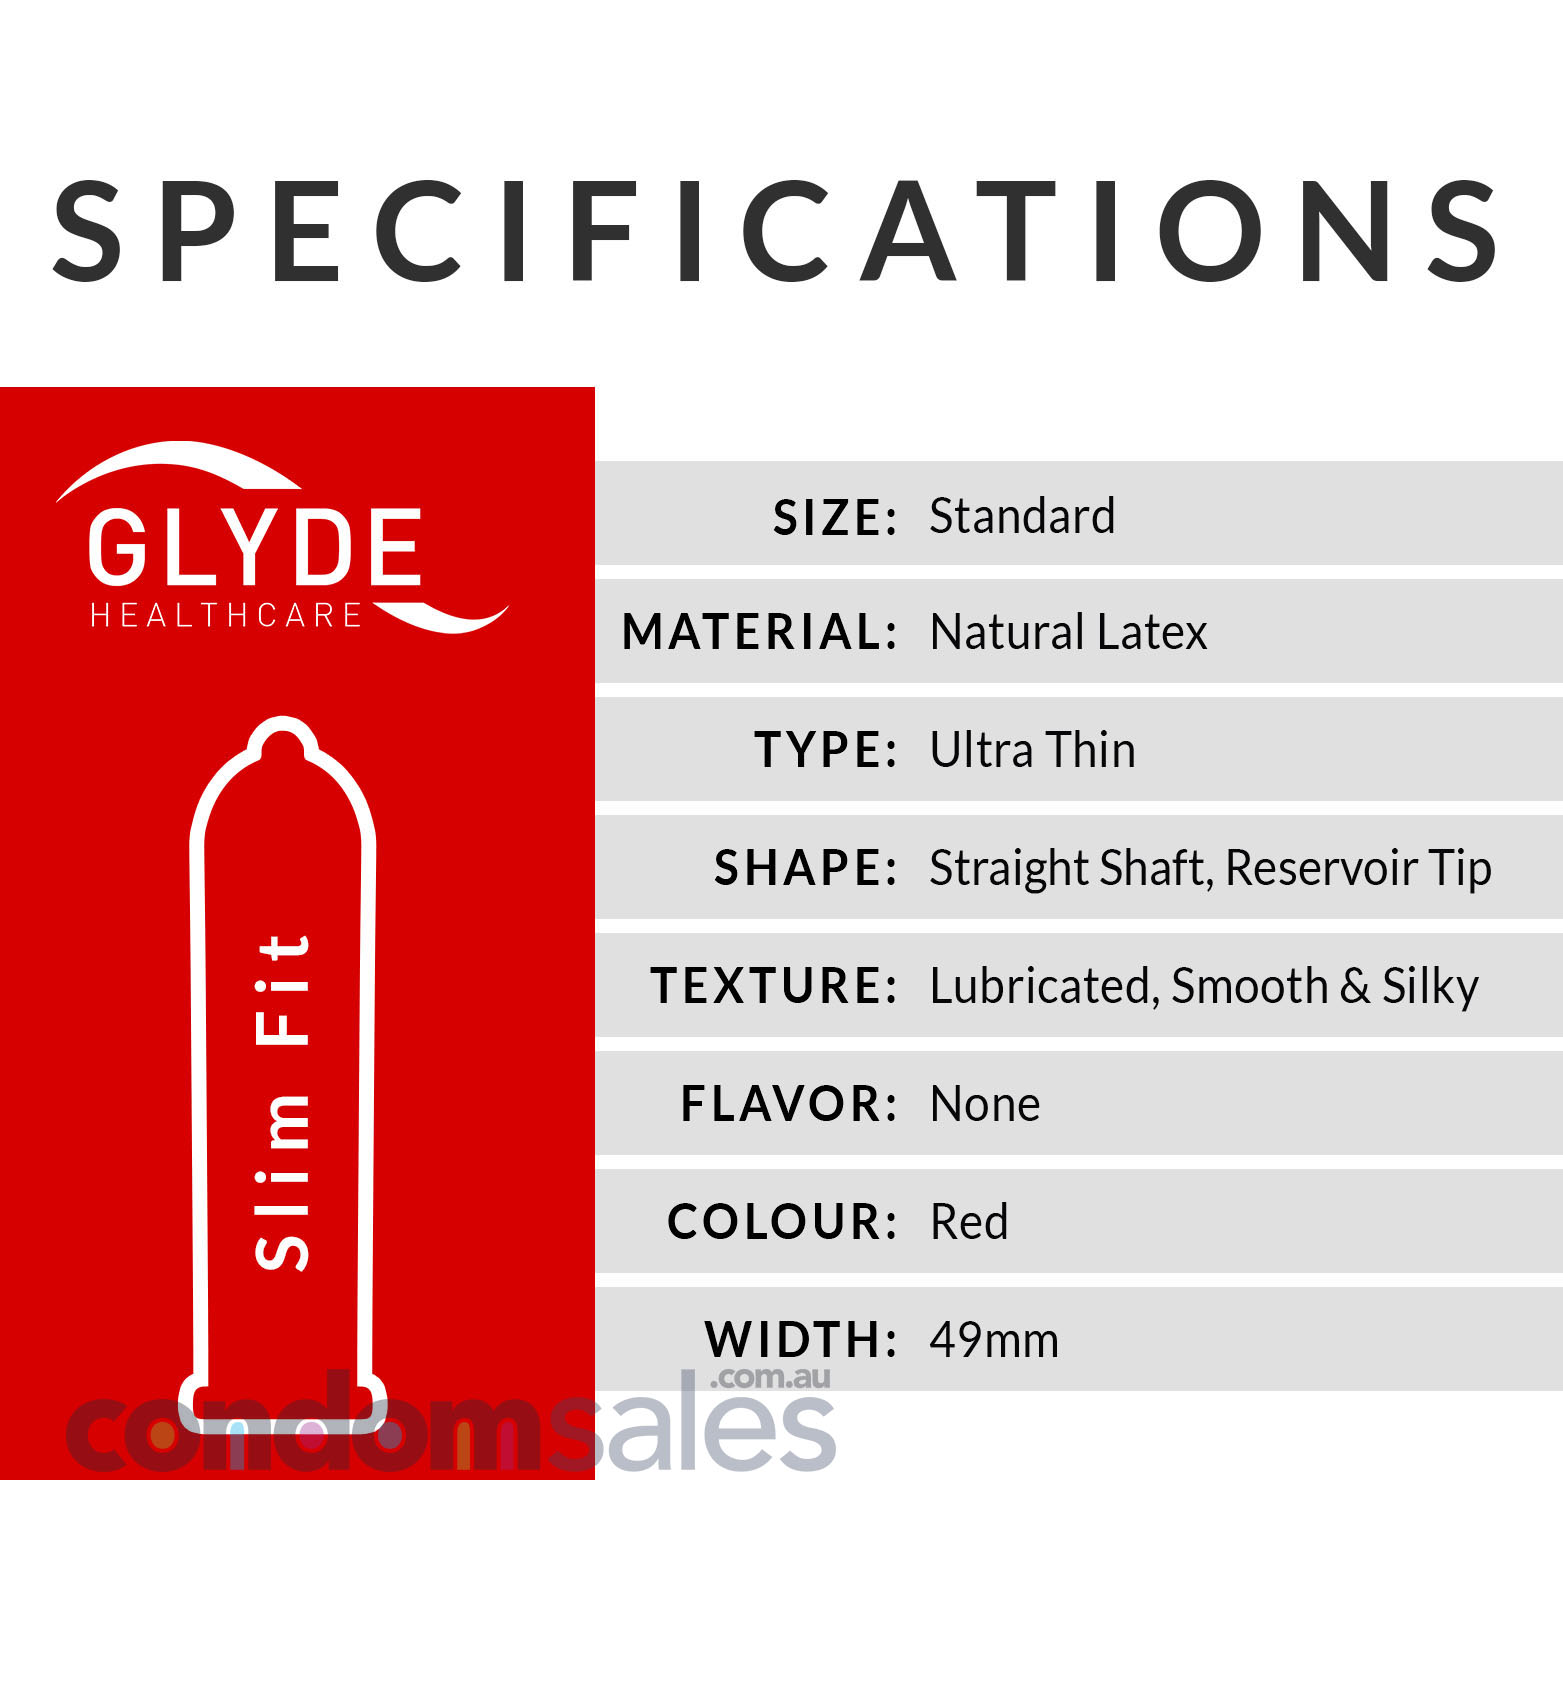 Glyde Slim Fit RED - Small 49mm Condoms